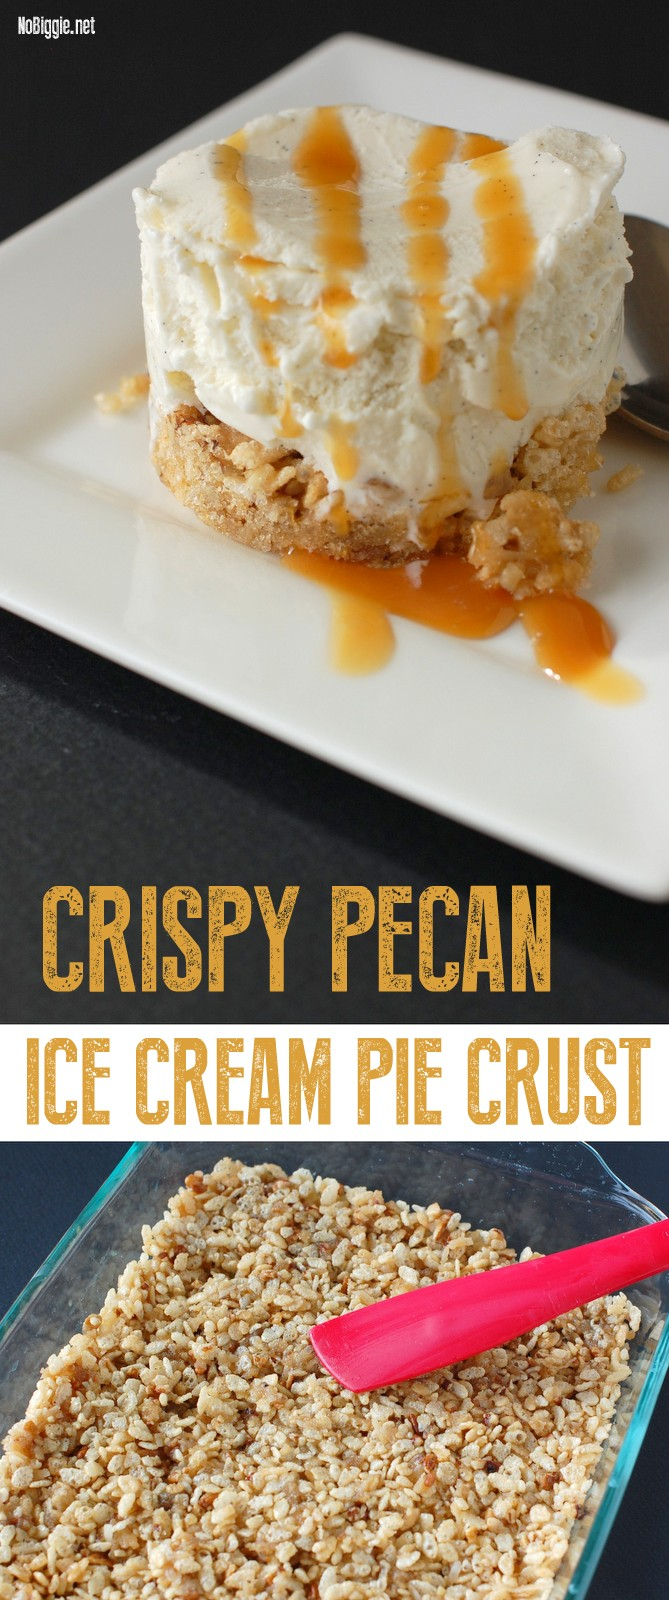 Crispy Pecan Ice Cream Pie Crust